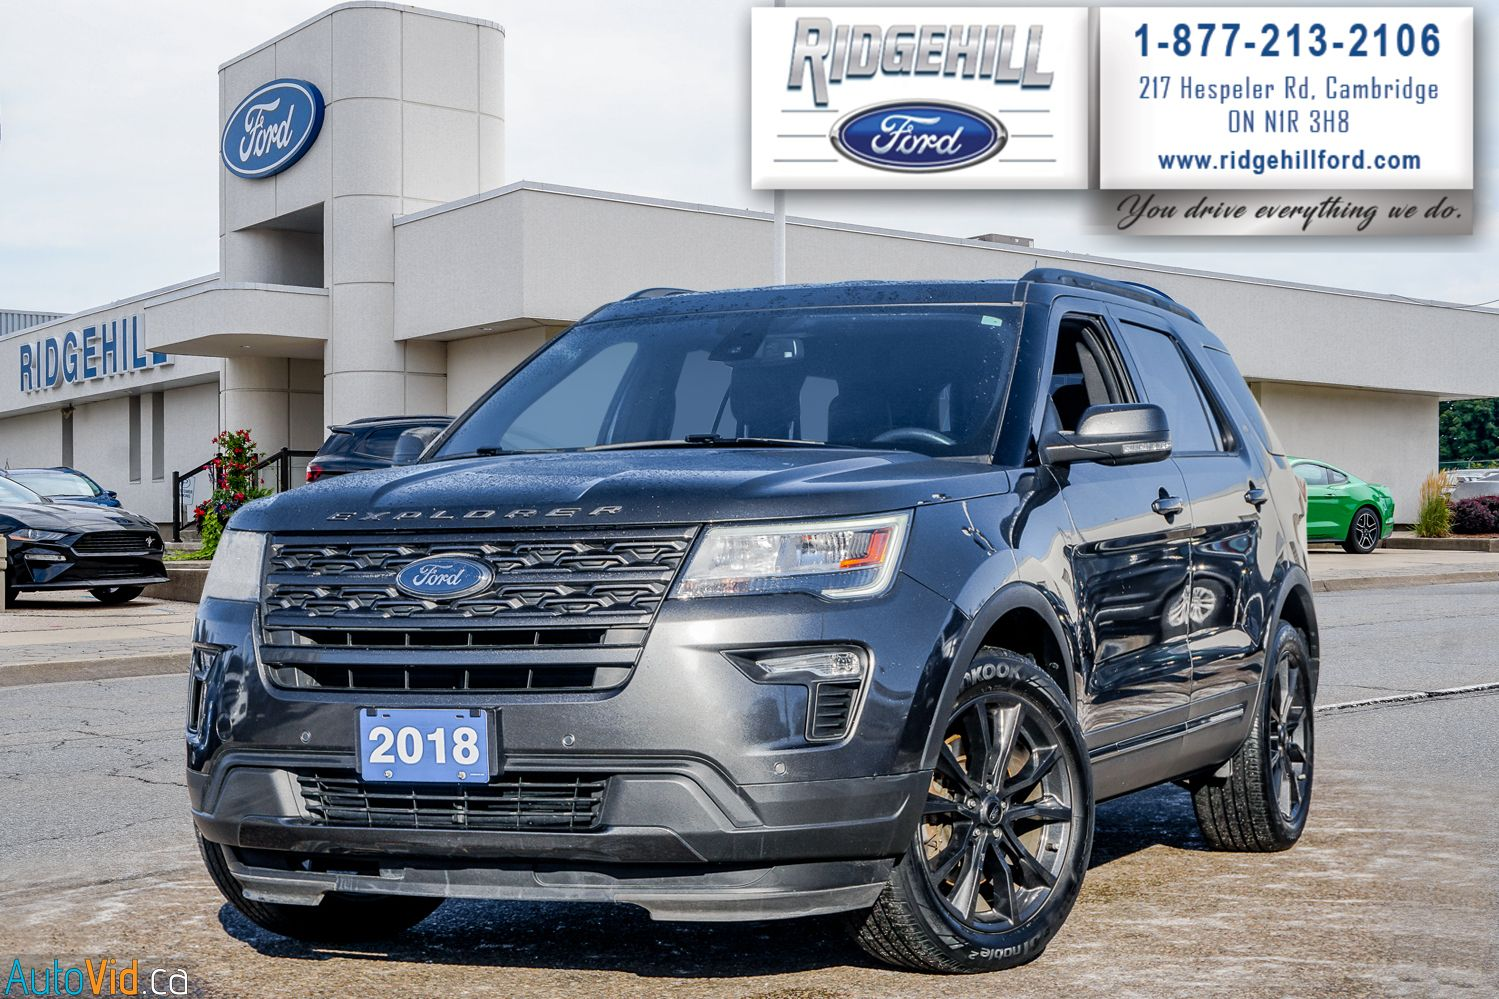 2018 Ford Explorer Image